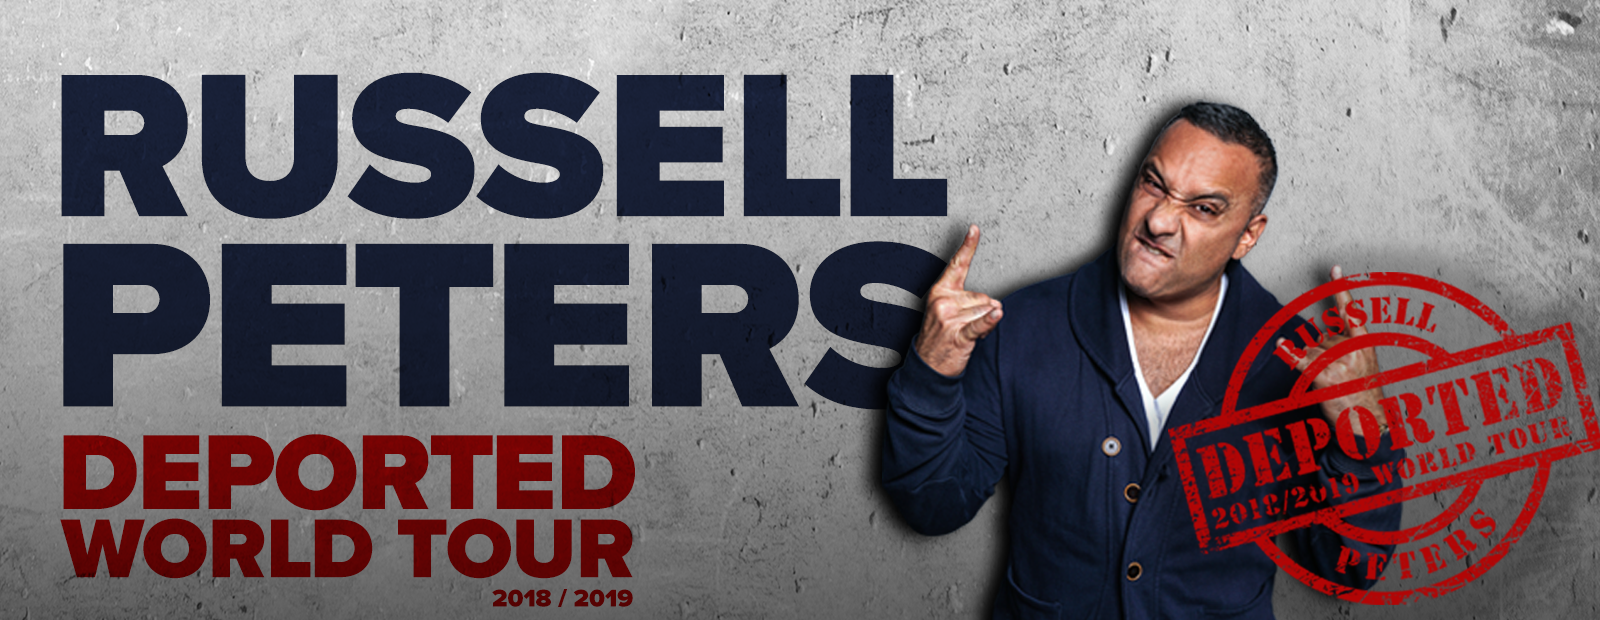 Russell Peters Deported World Tour is coming to the Aud November 19 2018